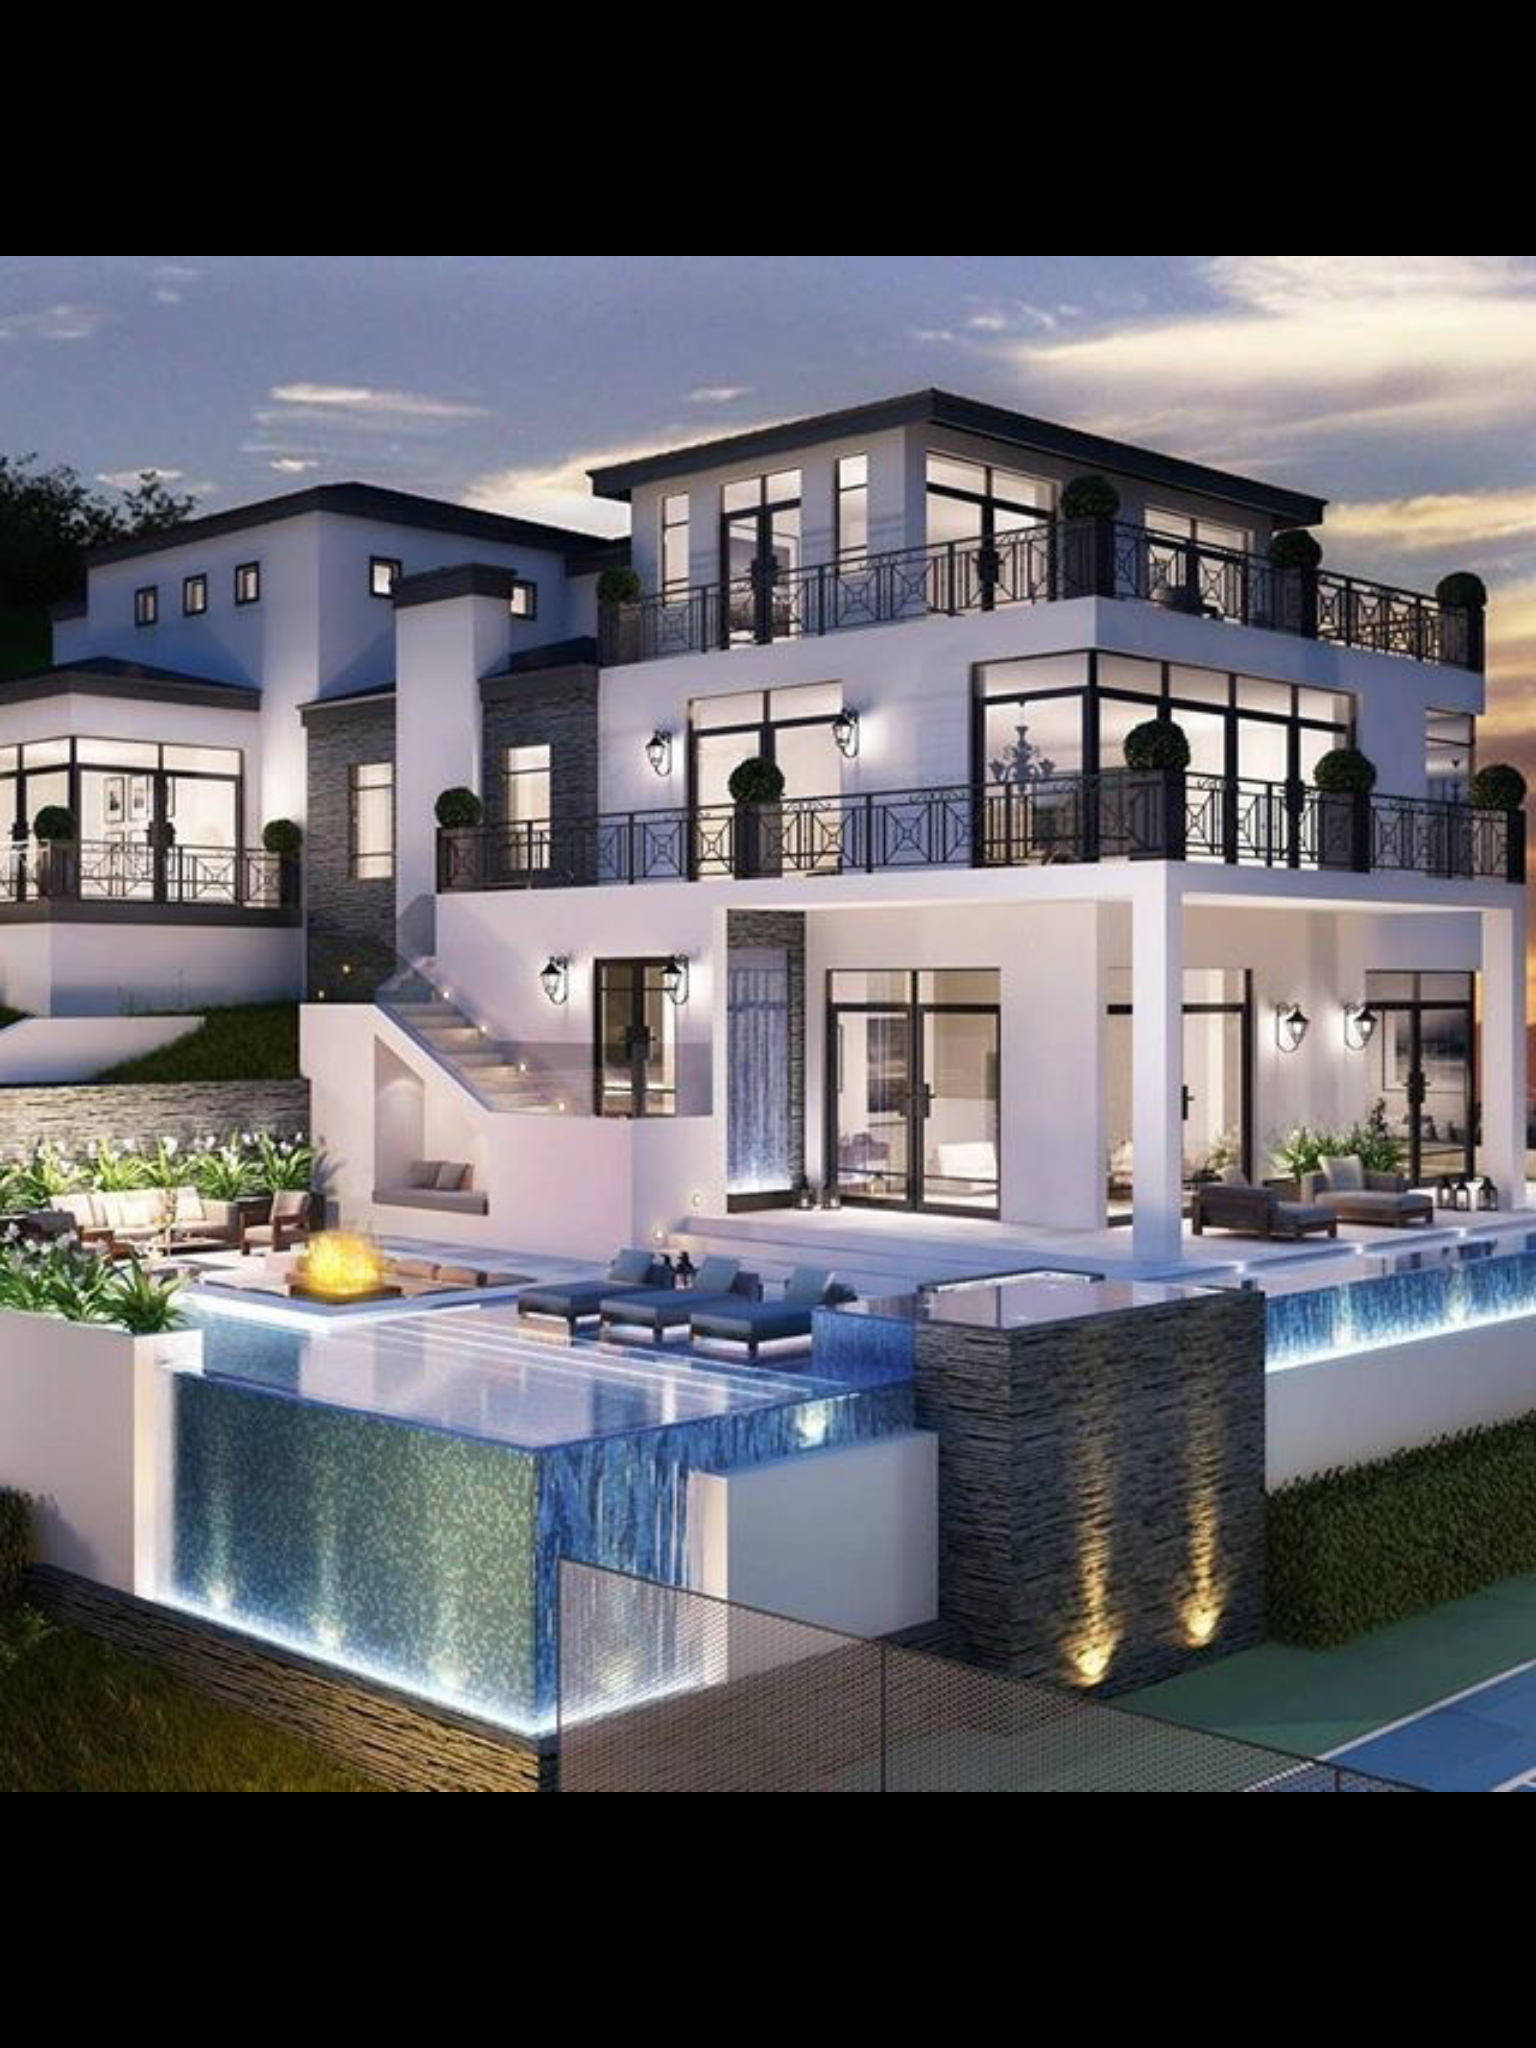 54 stunning dream homes mega mansions from social media modernmansionhouse